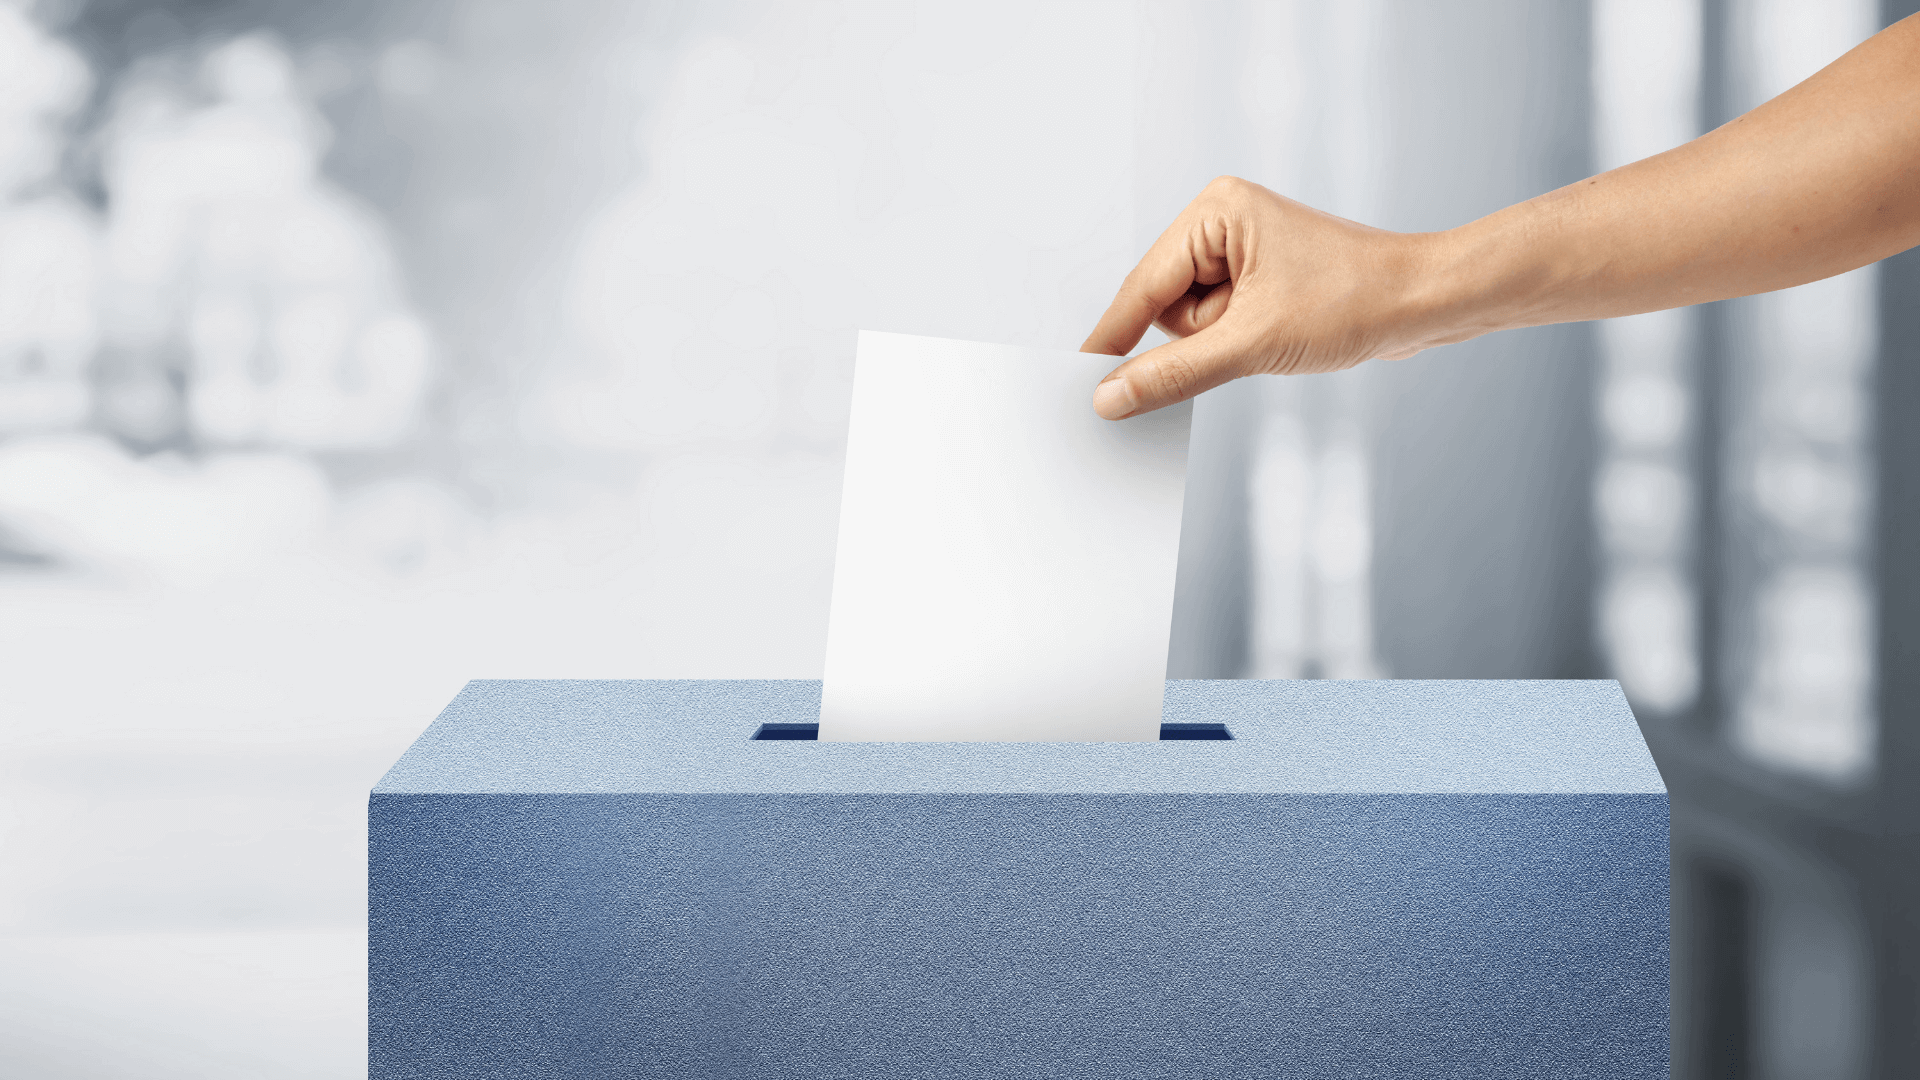 The Safest Place for Your Voter Registration Data is in the Cloud